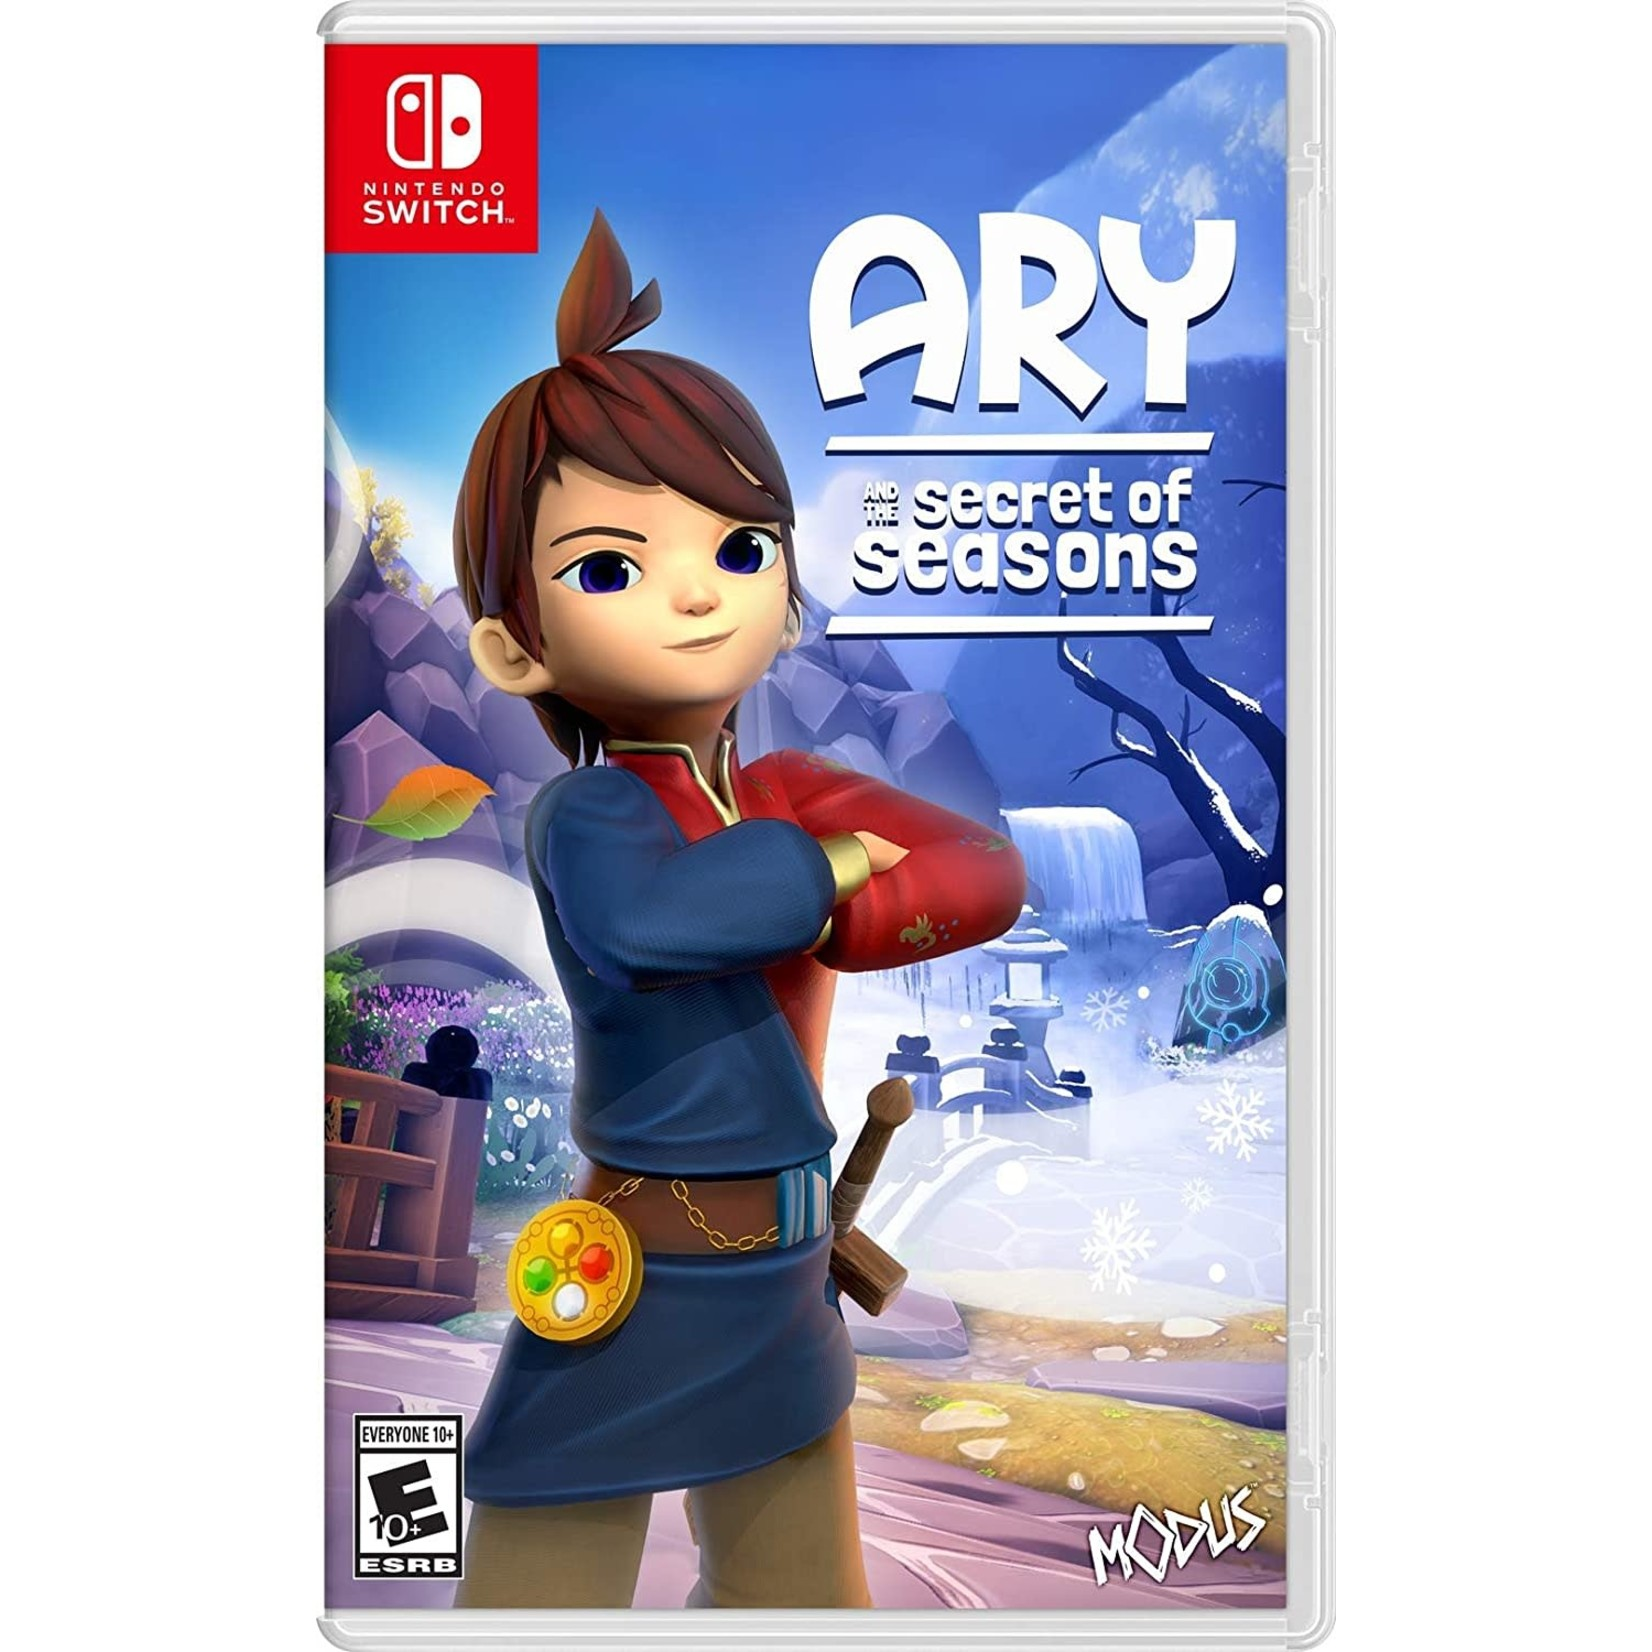 SWITCH-Ary and the Secret of Seasons